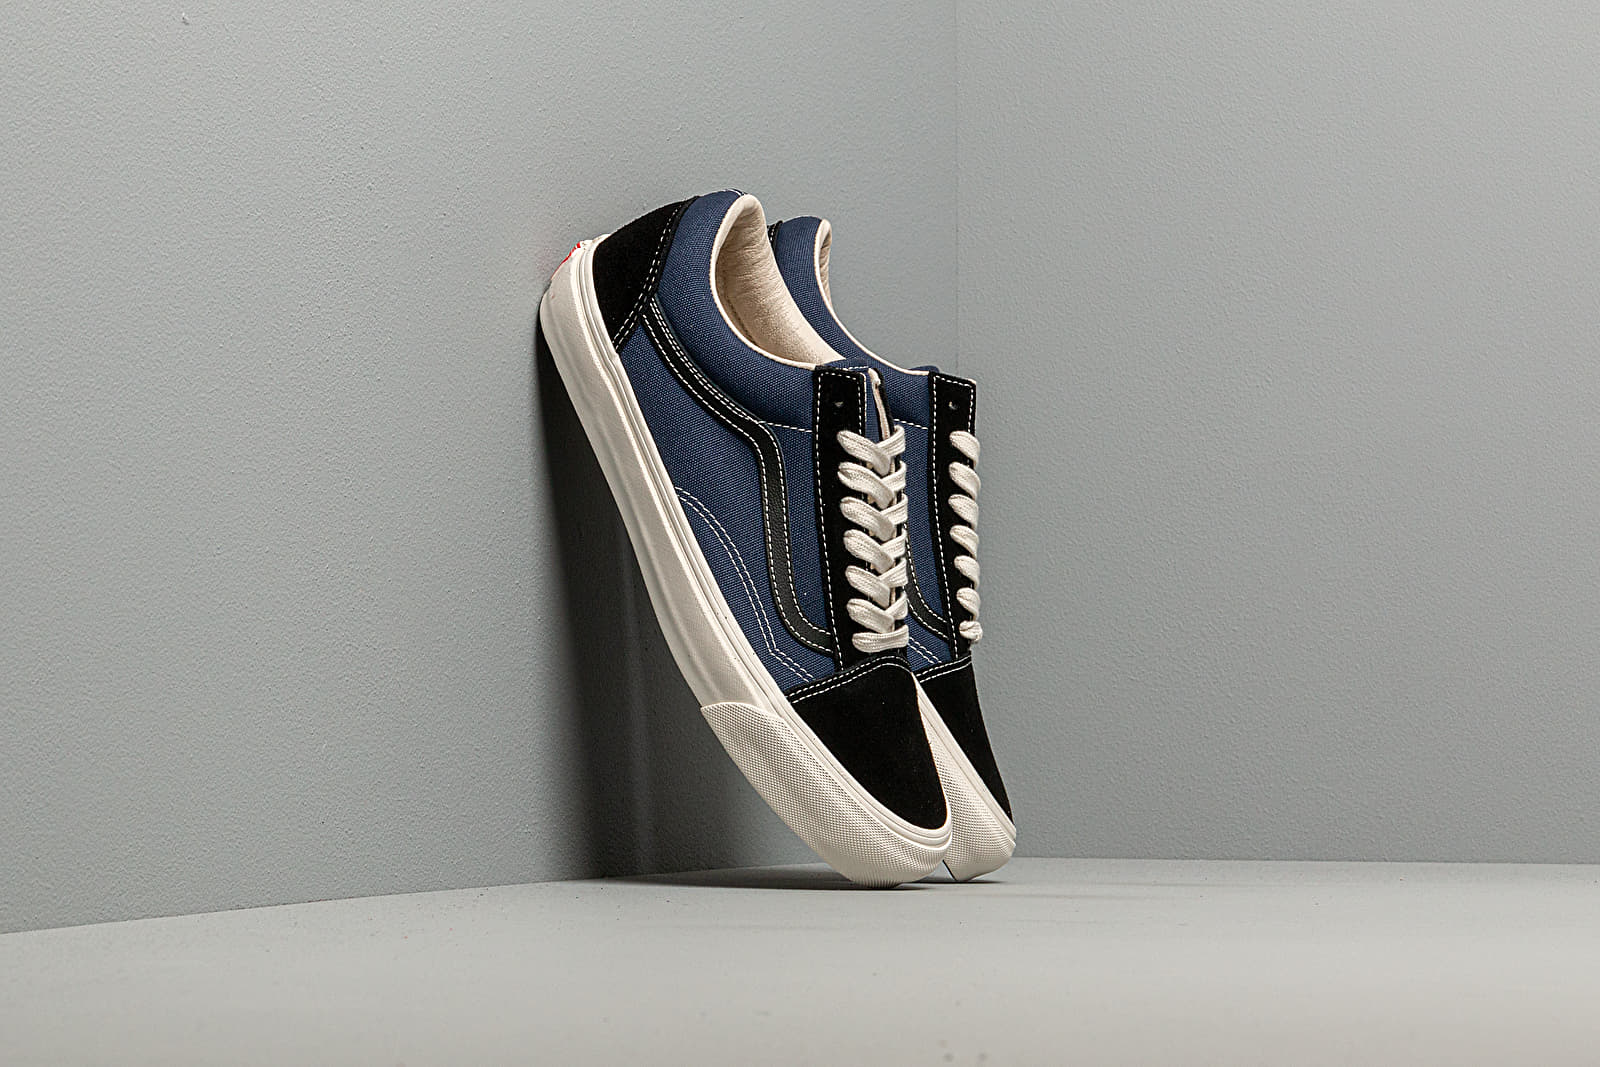 Zapatillas Hombre Vans OG Old Skool LX (Suede/ Canvas) Black/ Navy